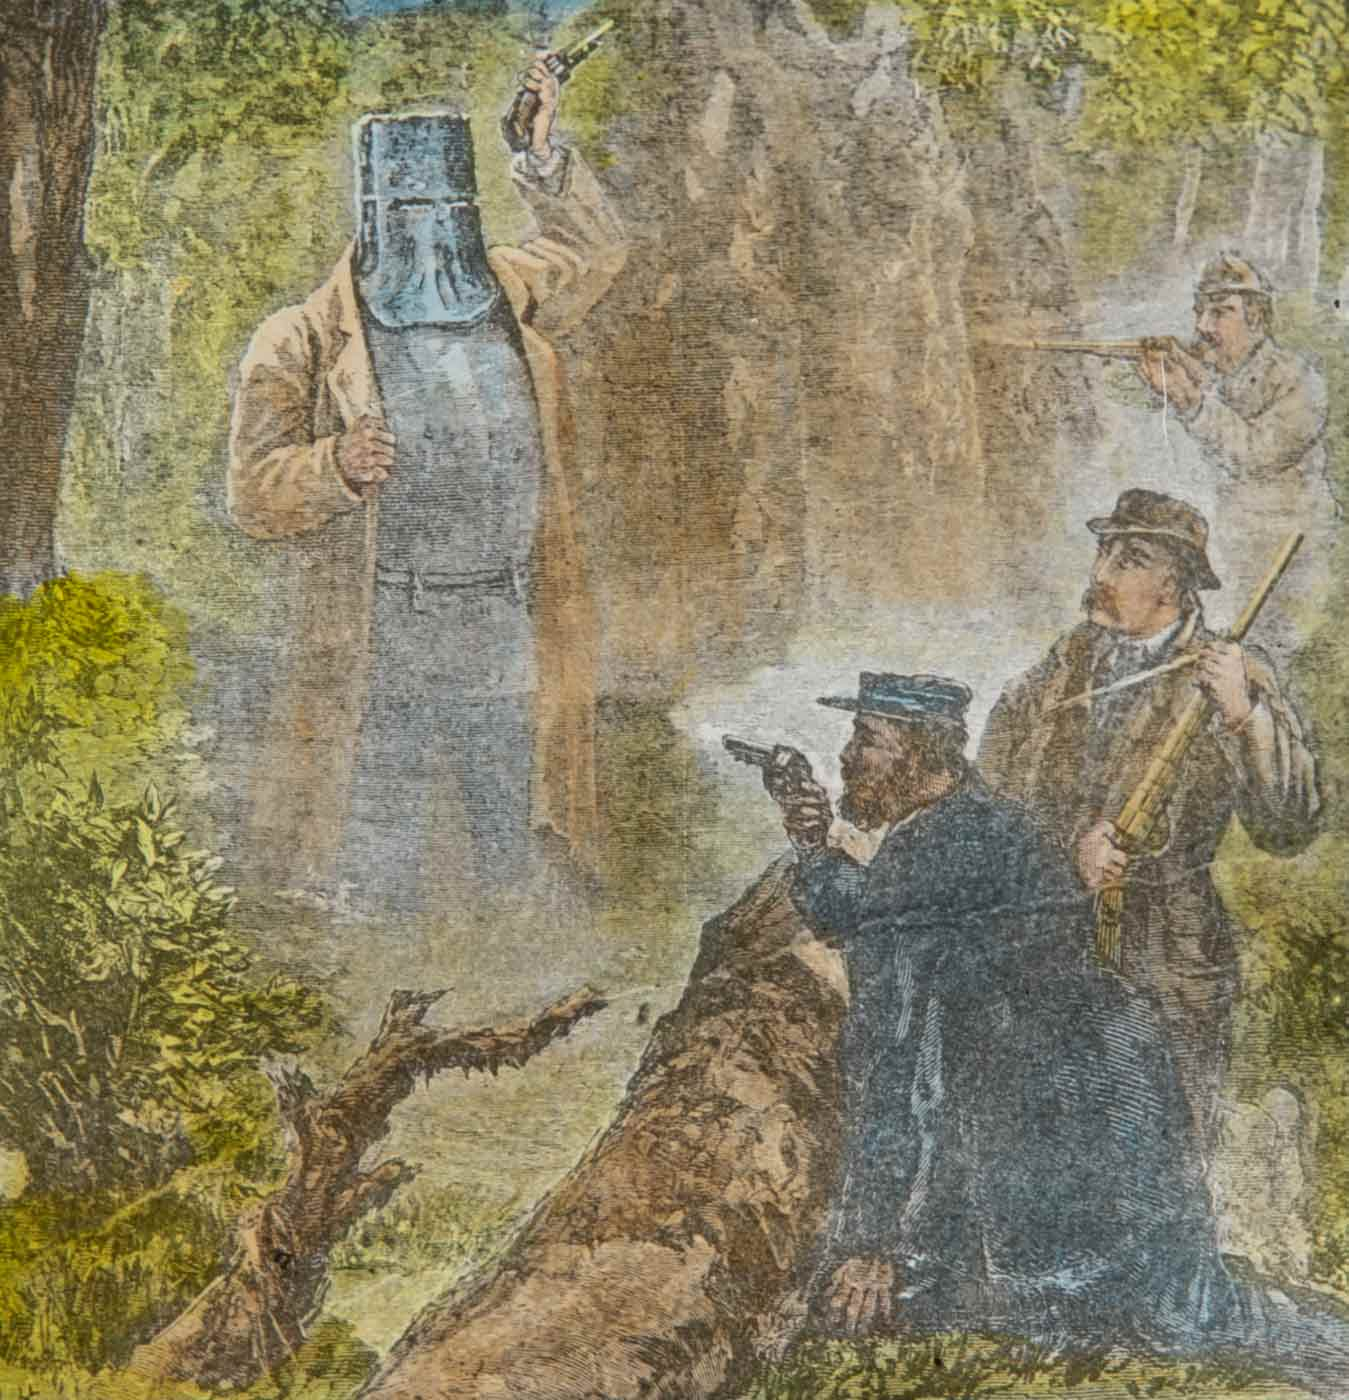 Glass slide depicting Ned Kelly in armour with revolver raised above his head in bush environment. Two men with rifles and one with revolver crouched pointing guns at Kelly. - click to view larger image